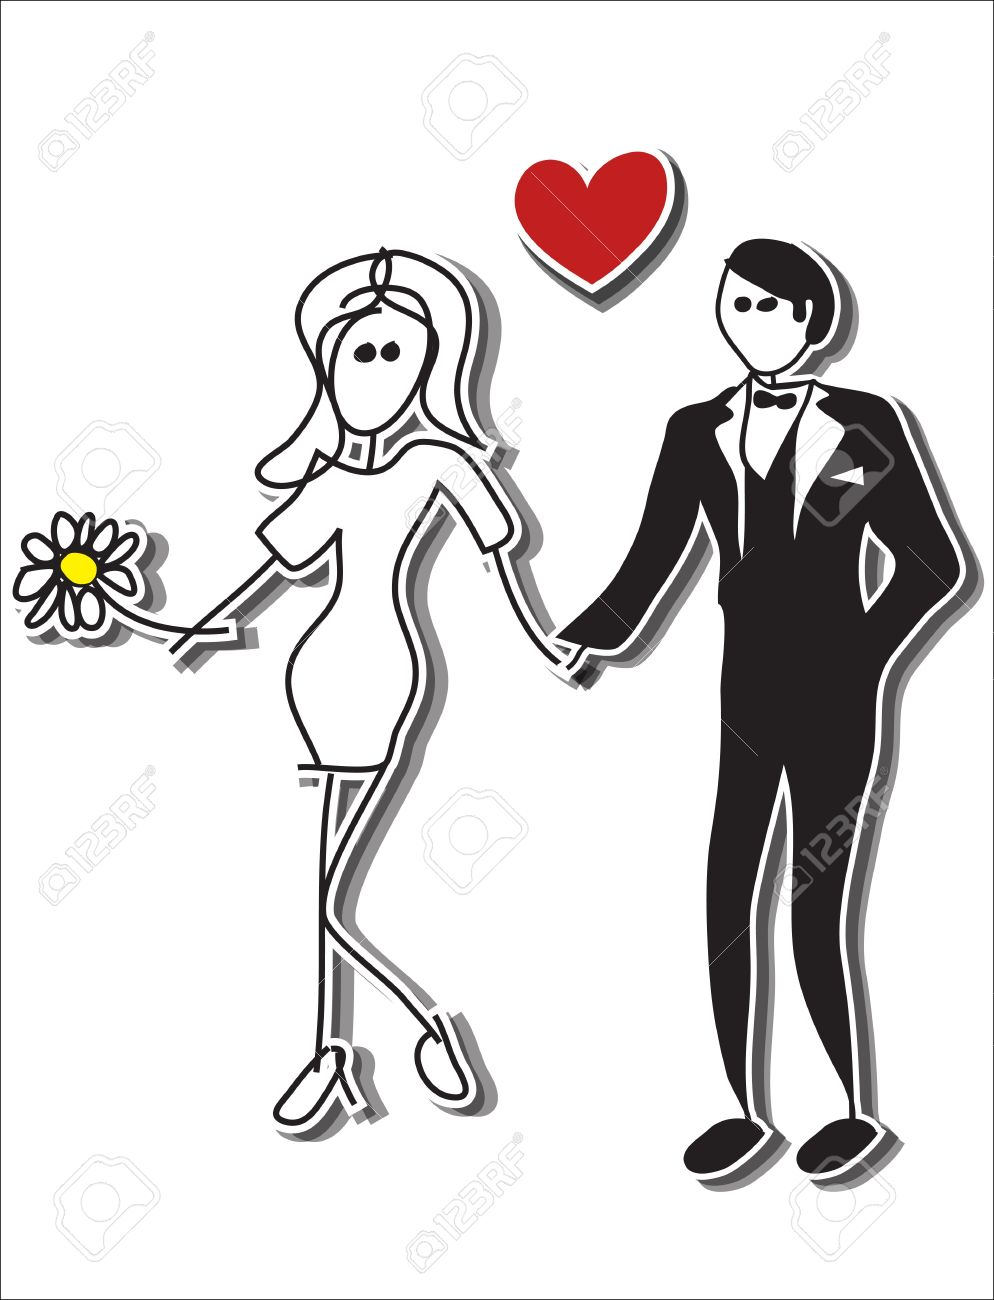 Hand drawn stick figures, Couple in love at wedding Stock Vector - 18496200